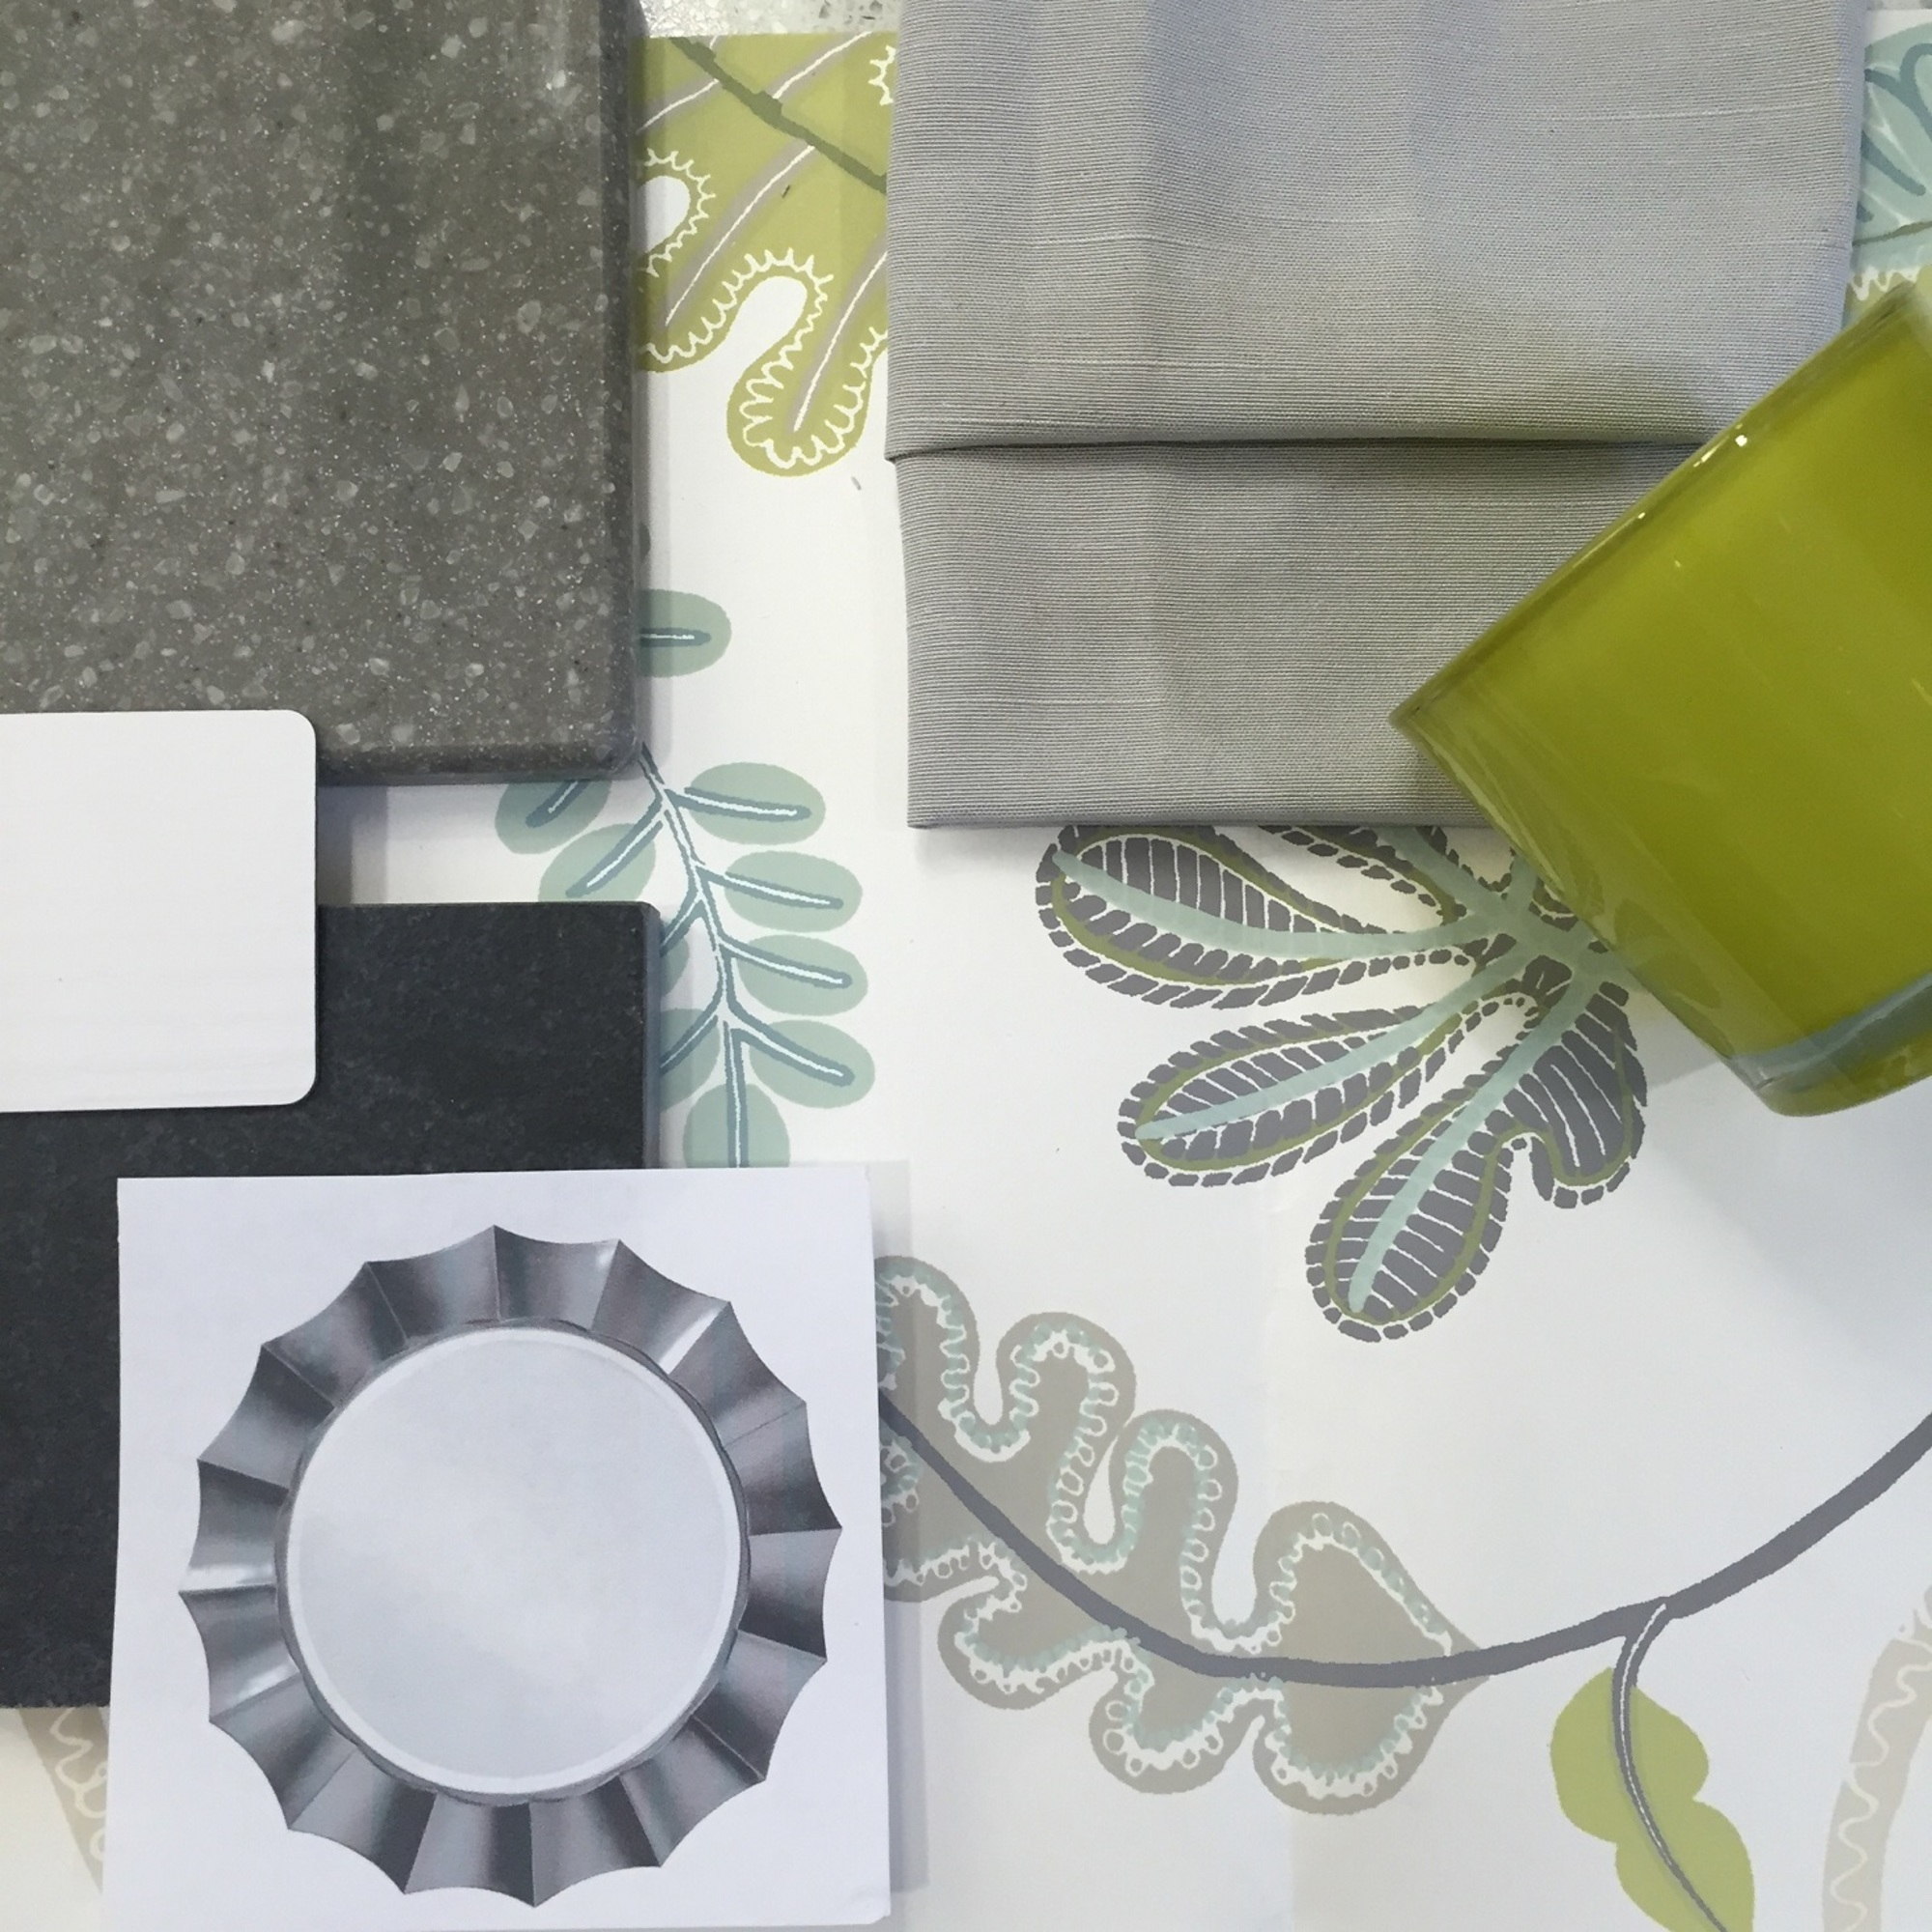 Design product collage by Urban Aesthetics.JPG